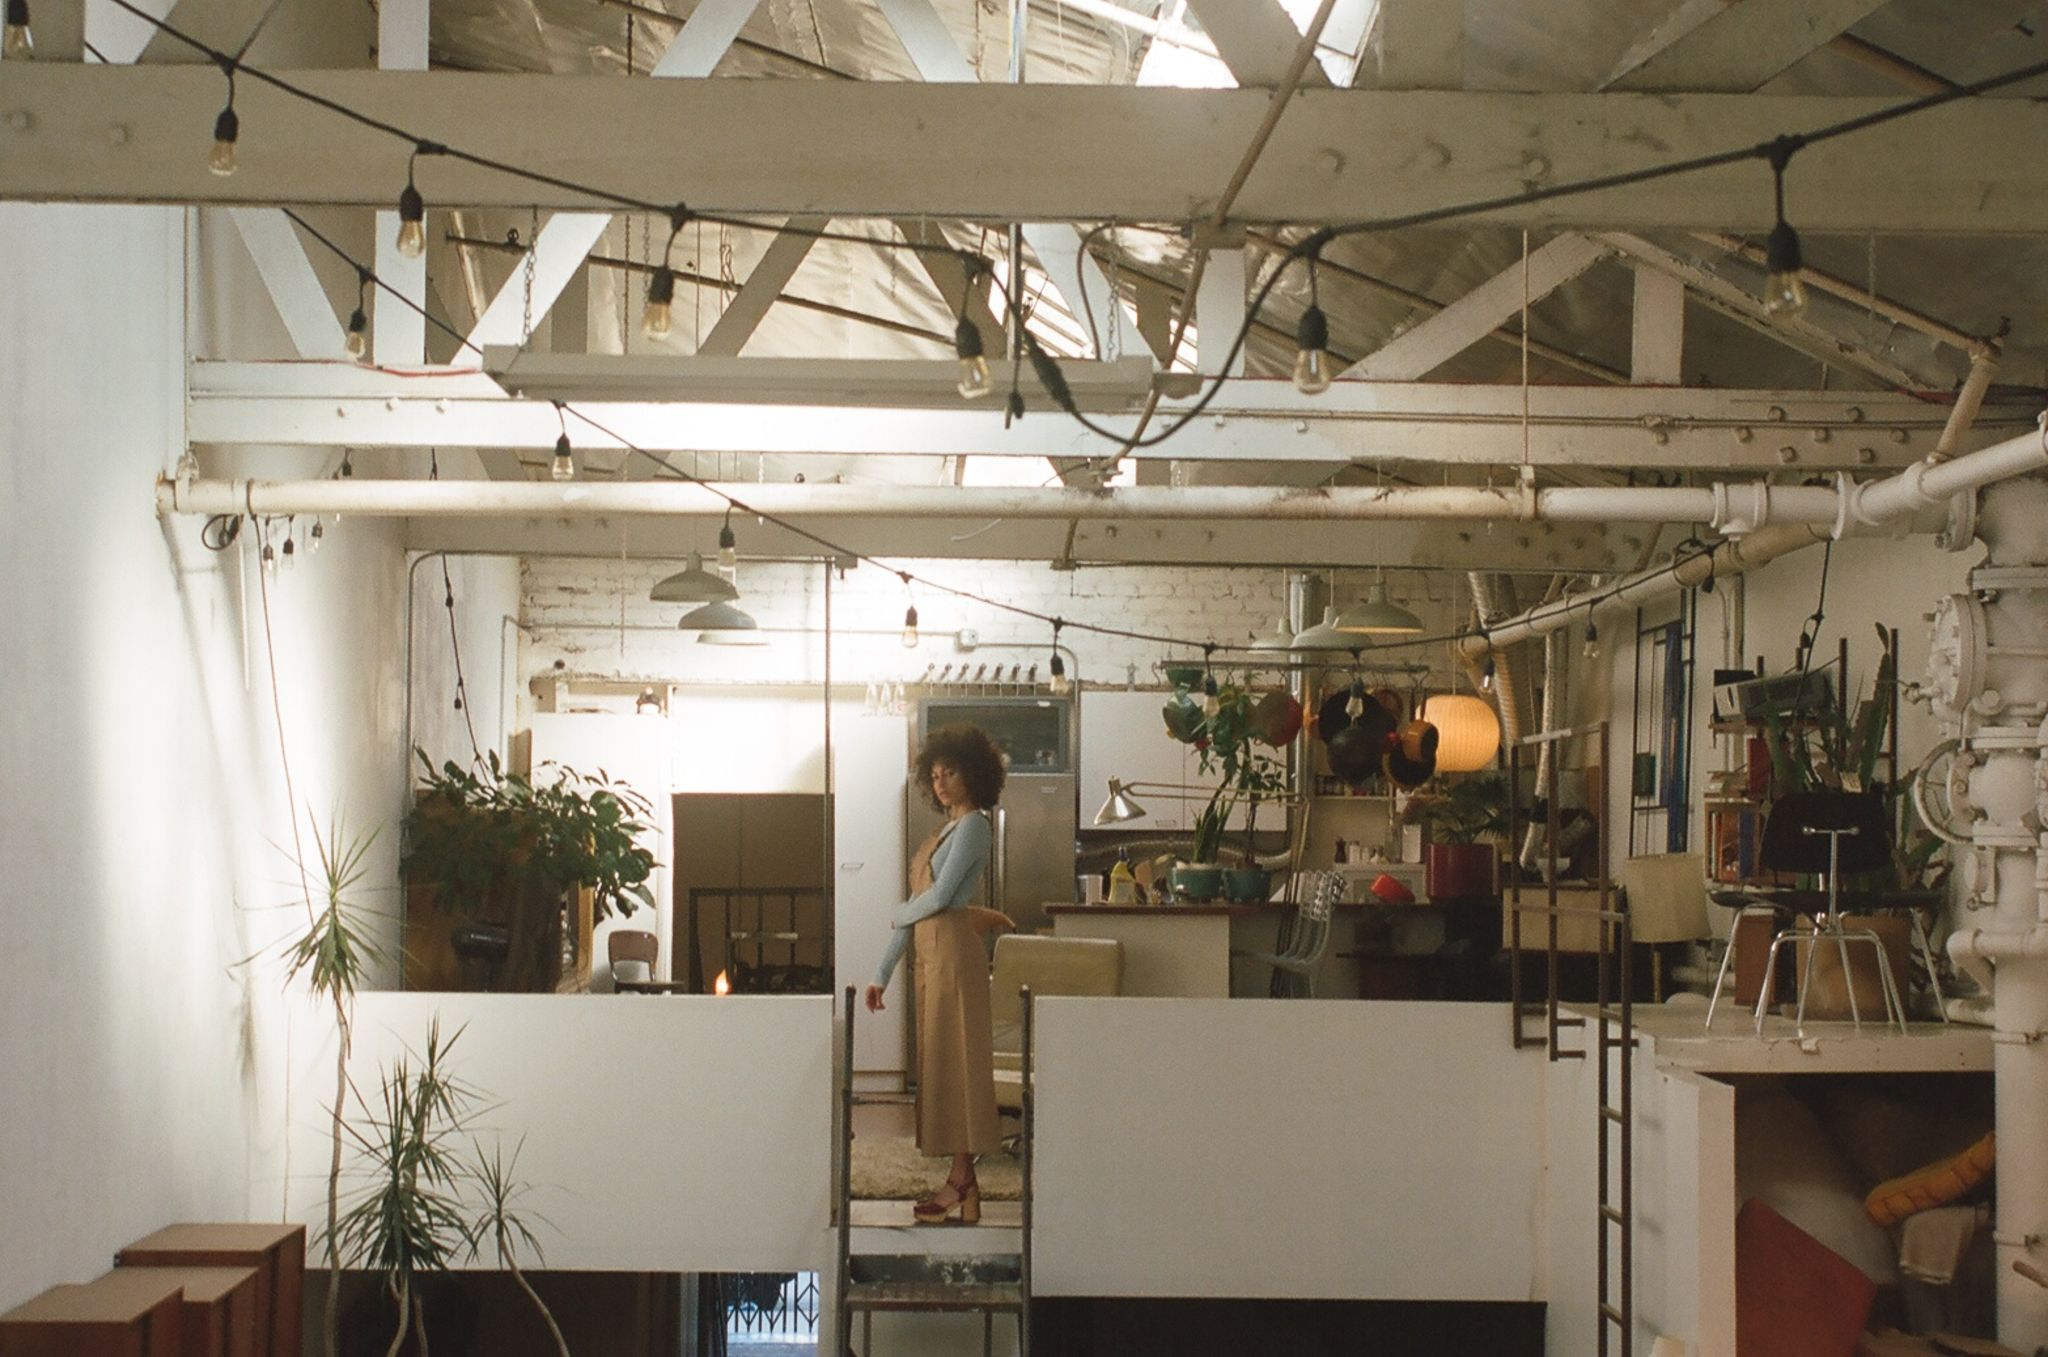 2 adjacent warehouse spaces with over 5000 pieces of mid century modern furniture los angeles ca production peerspace